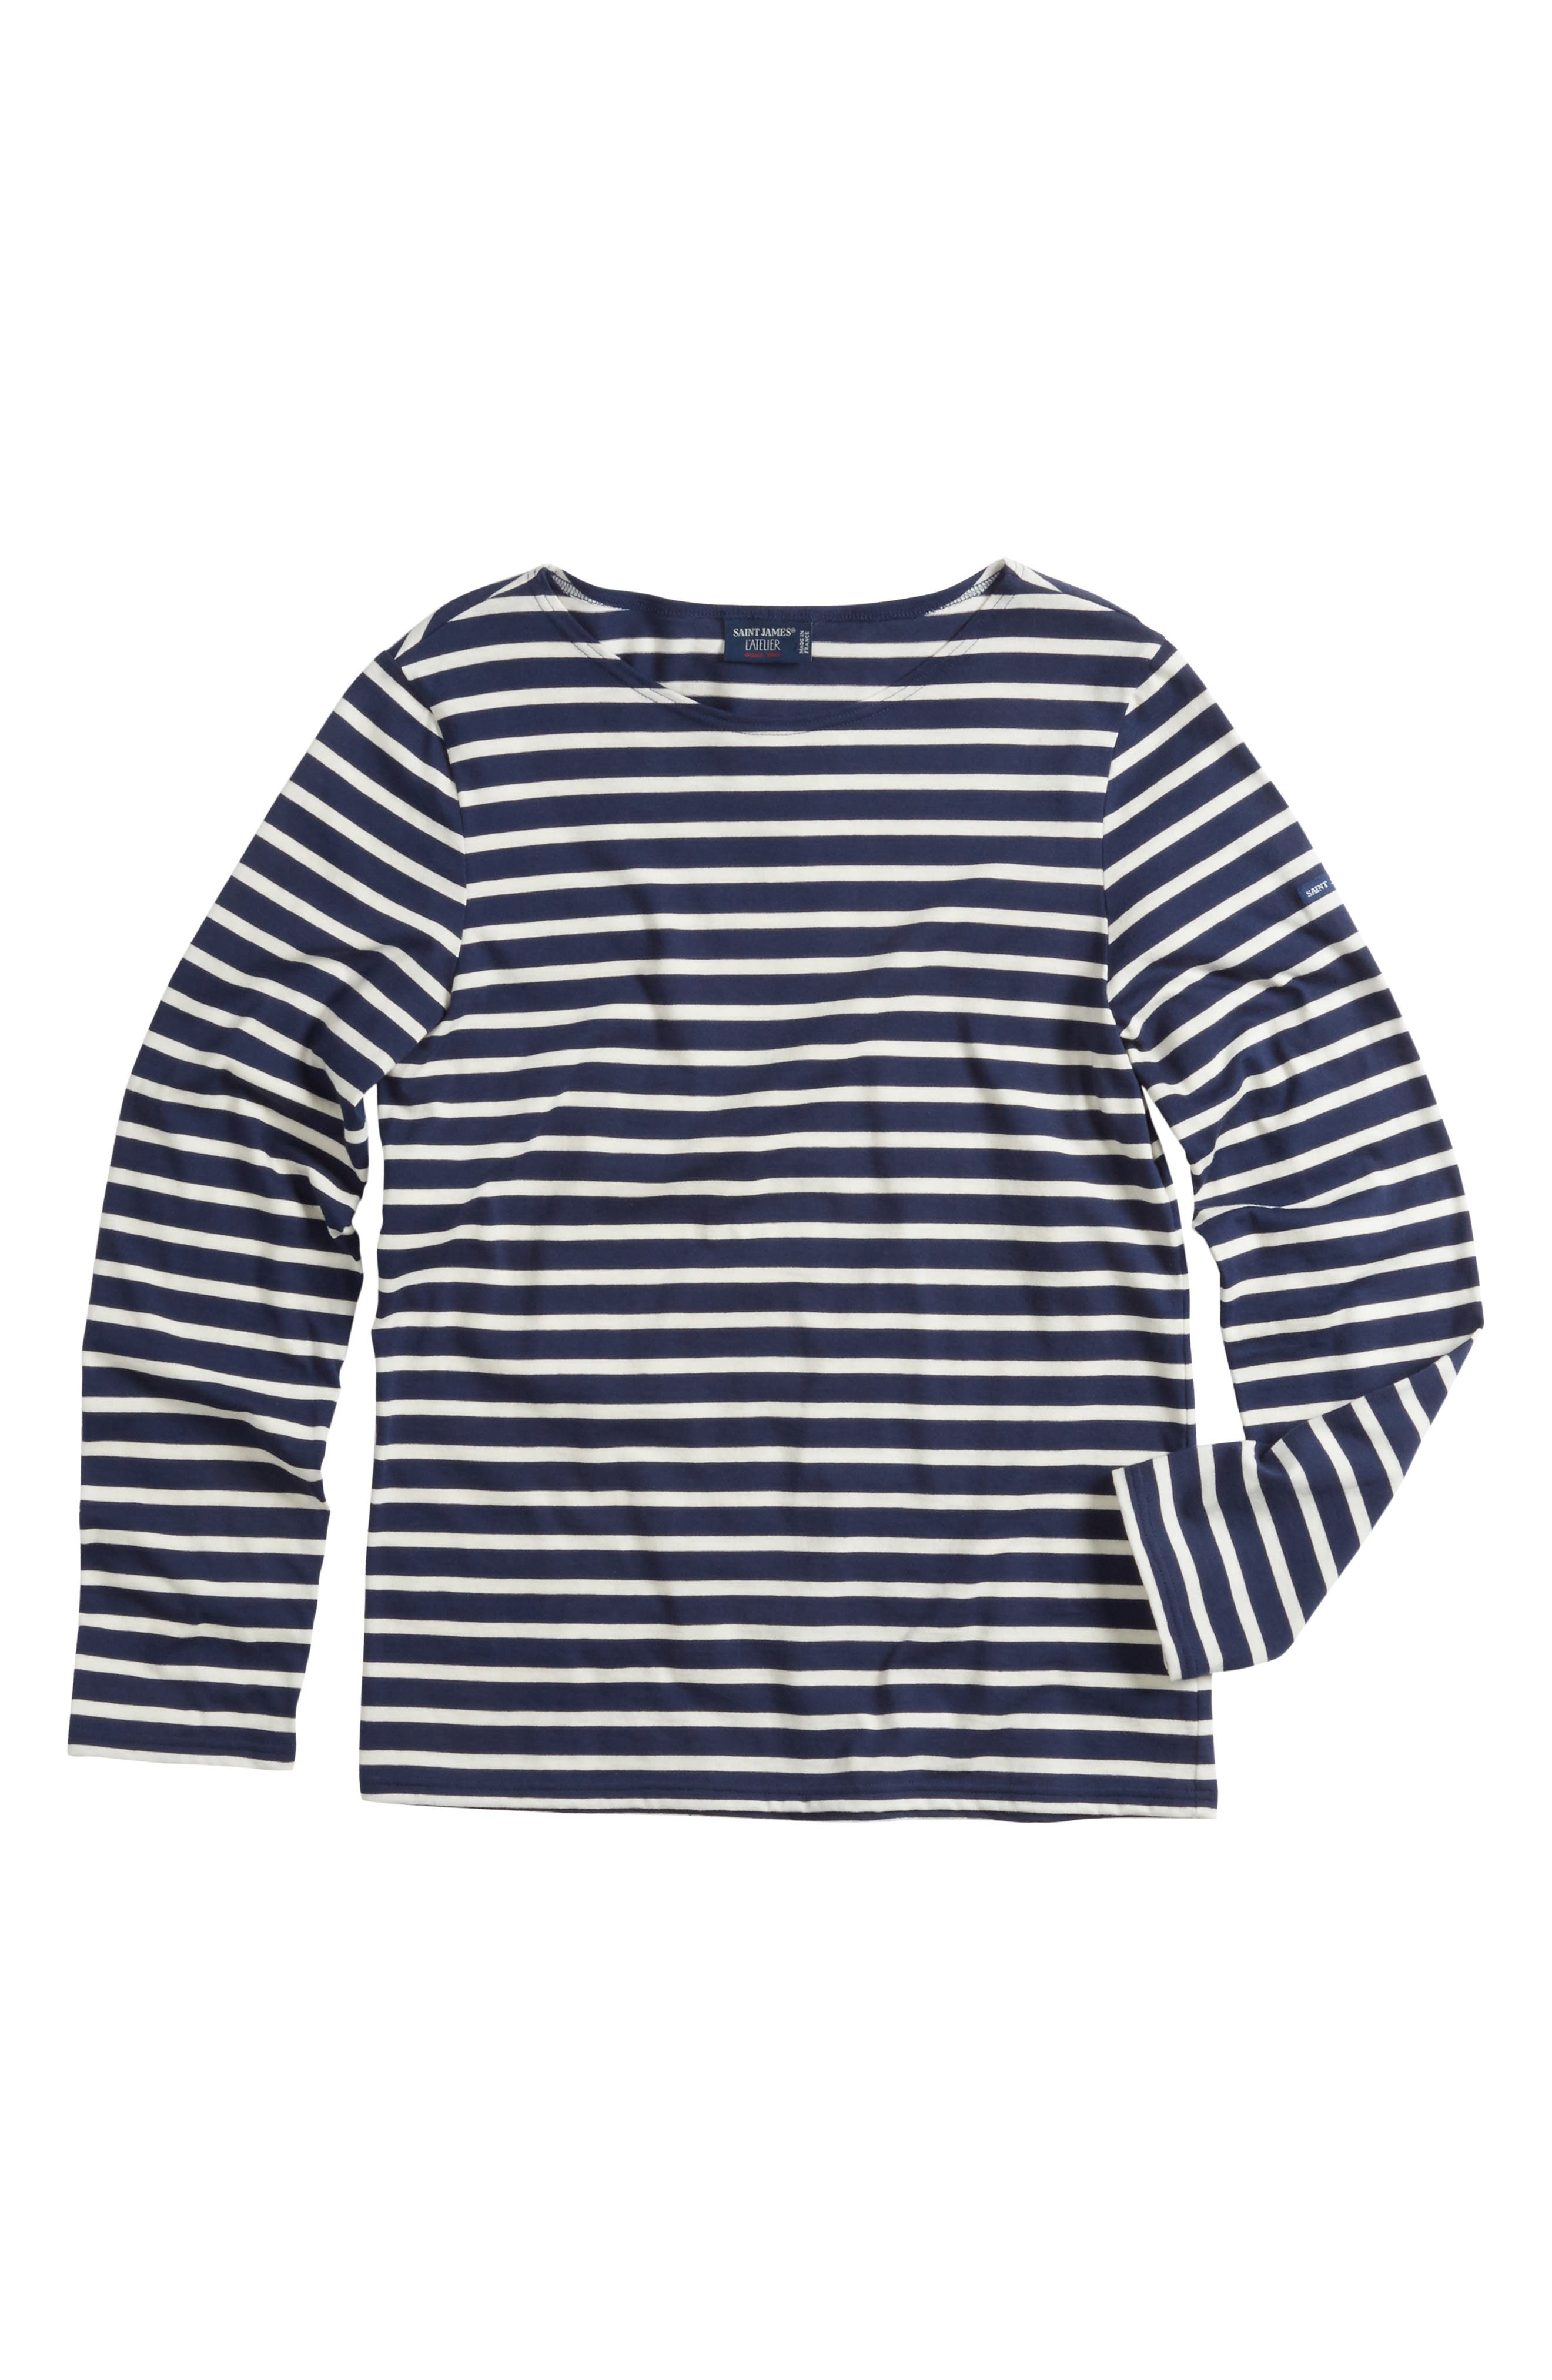 Minquiers Moderne Striped Sailor Shirt,                             Main thumbnail 1, color,                             Navy/ Off White